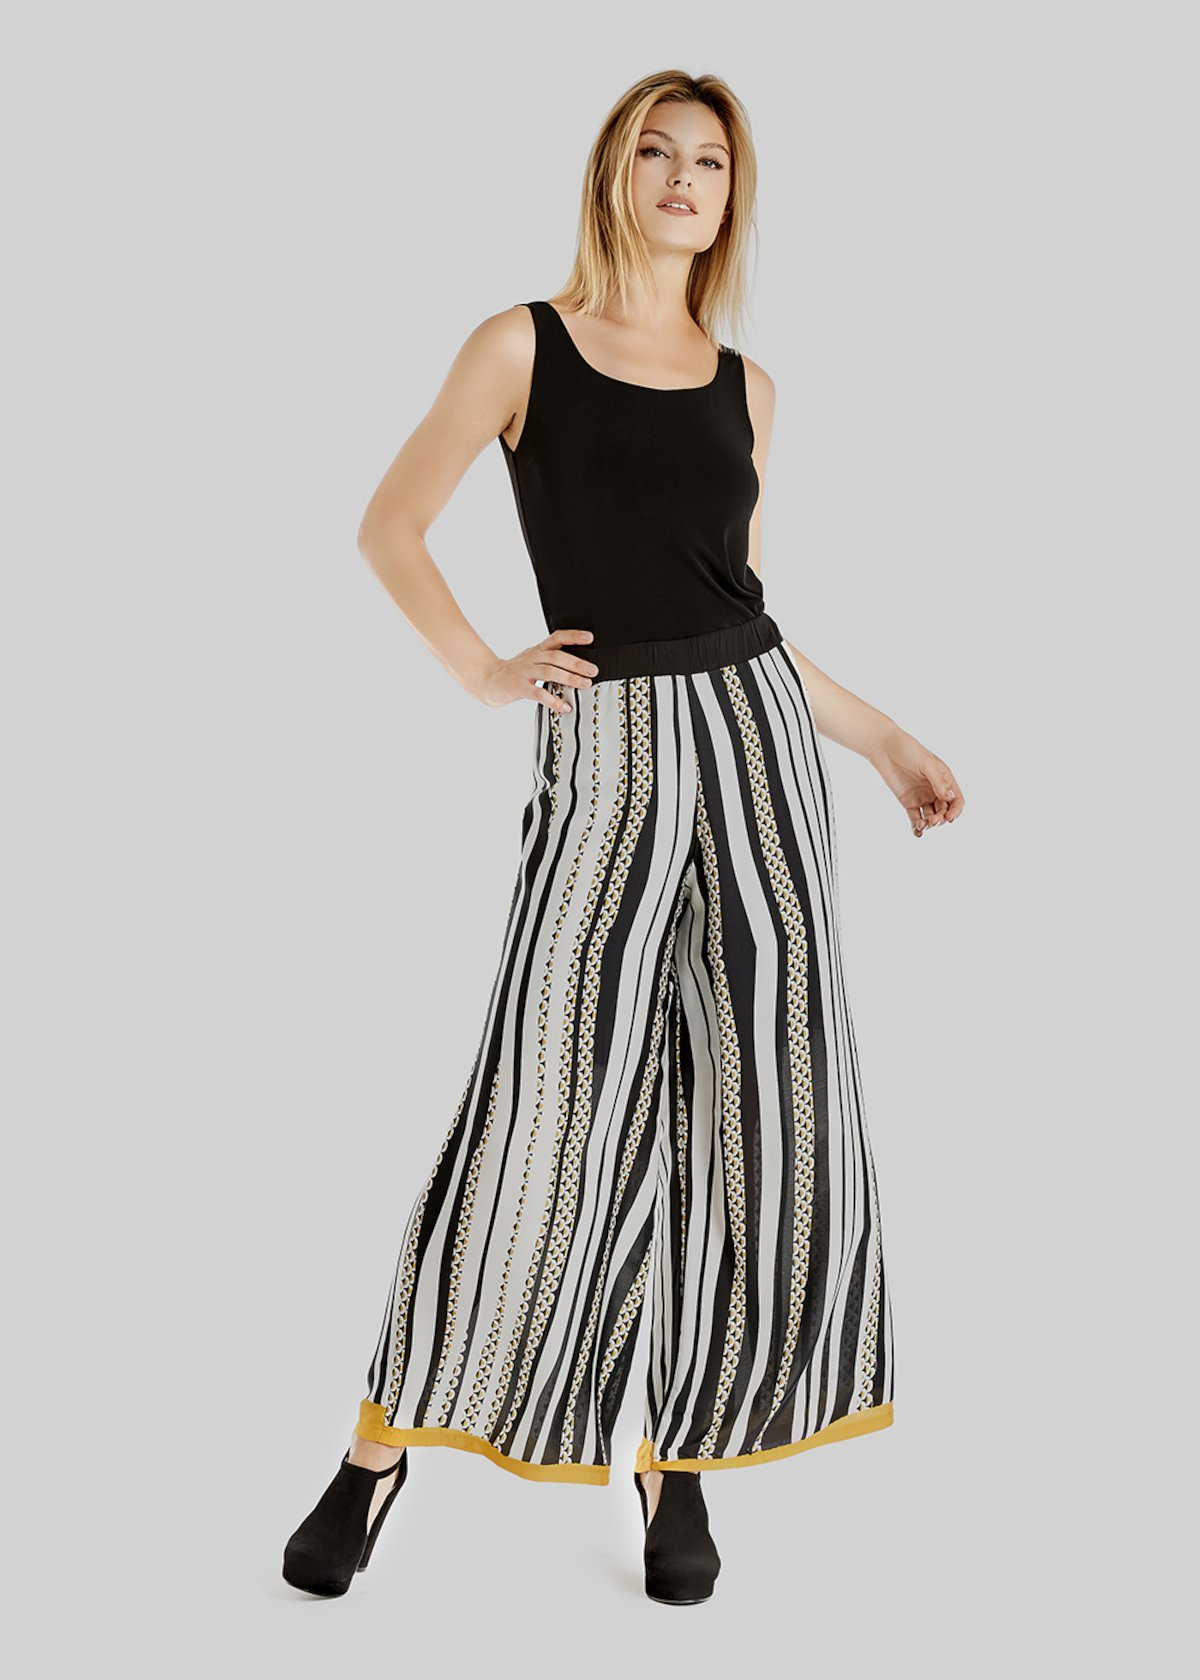 Pantaloni Payper in crepe halfmoon stripes fantasy - White / Black Stripes - Donna - Immagine categoria